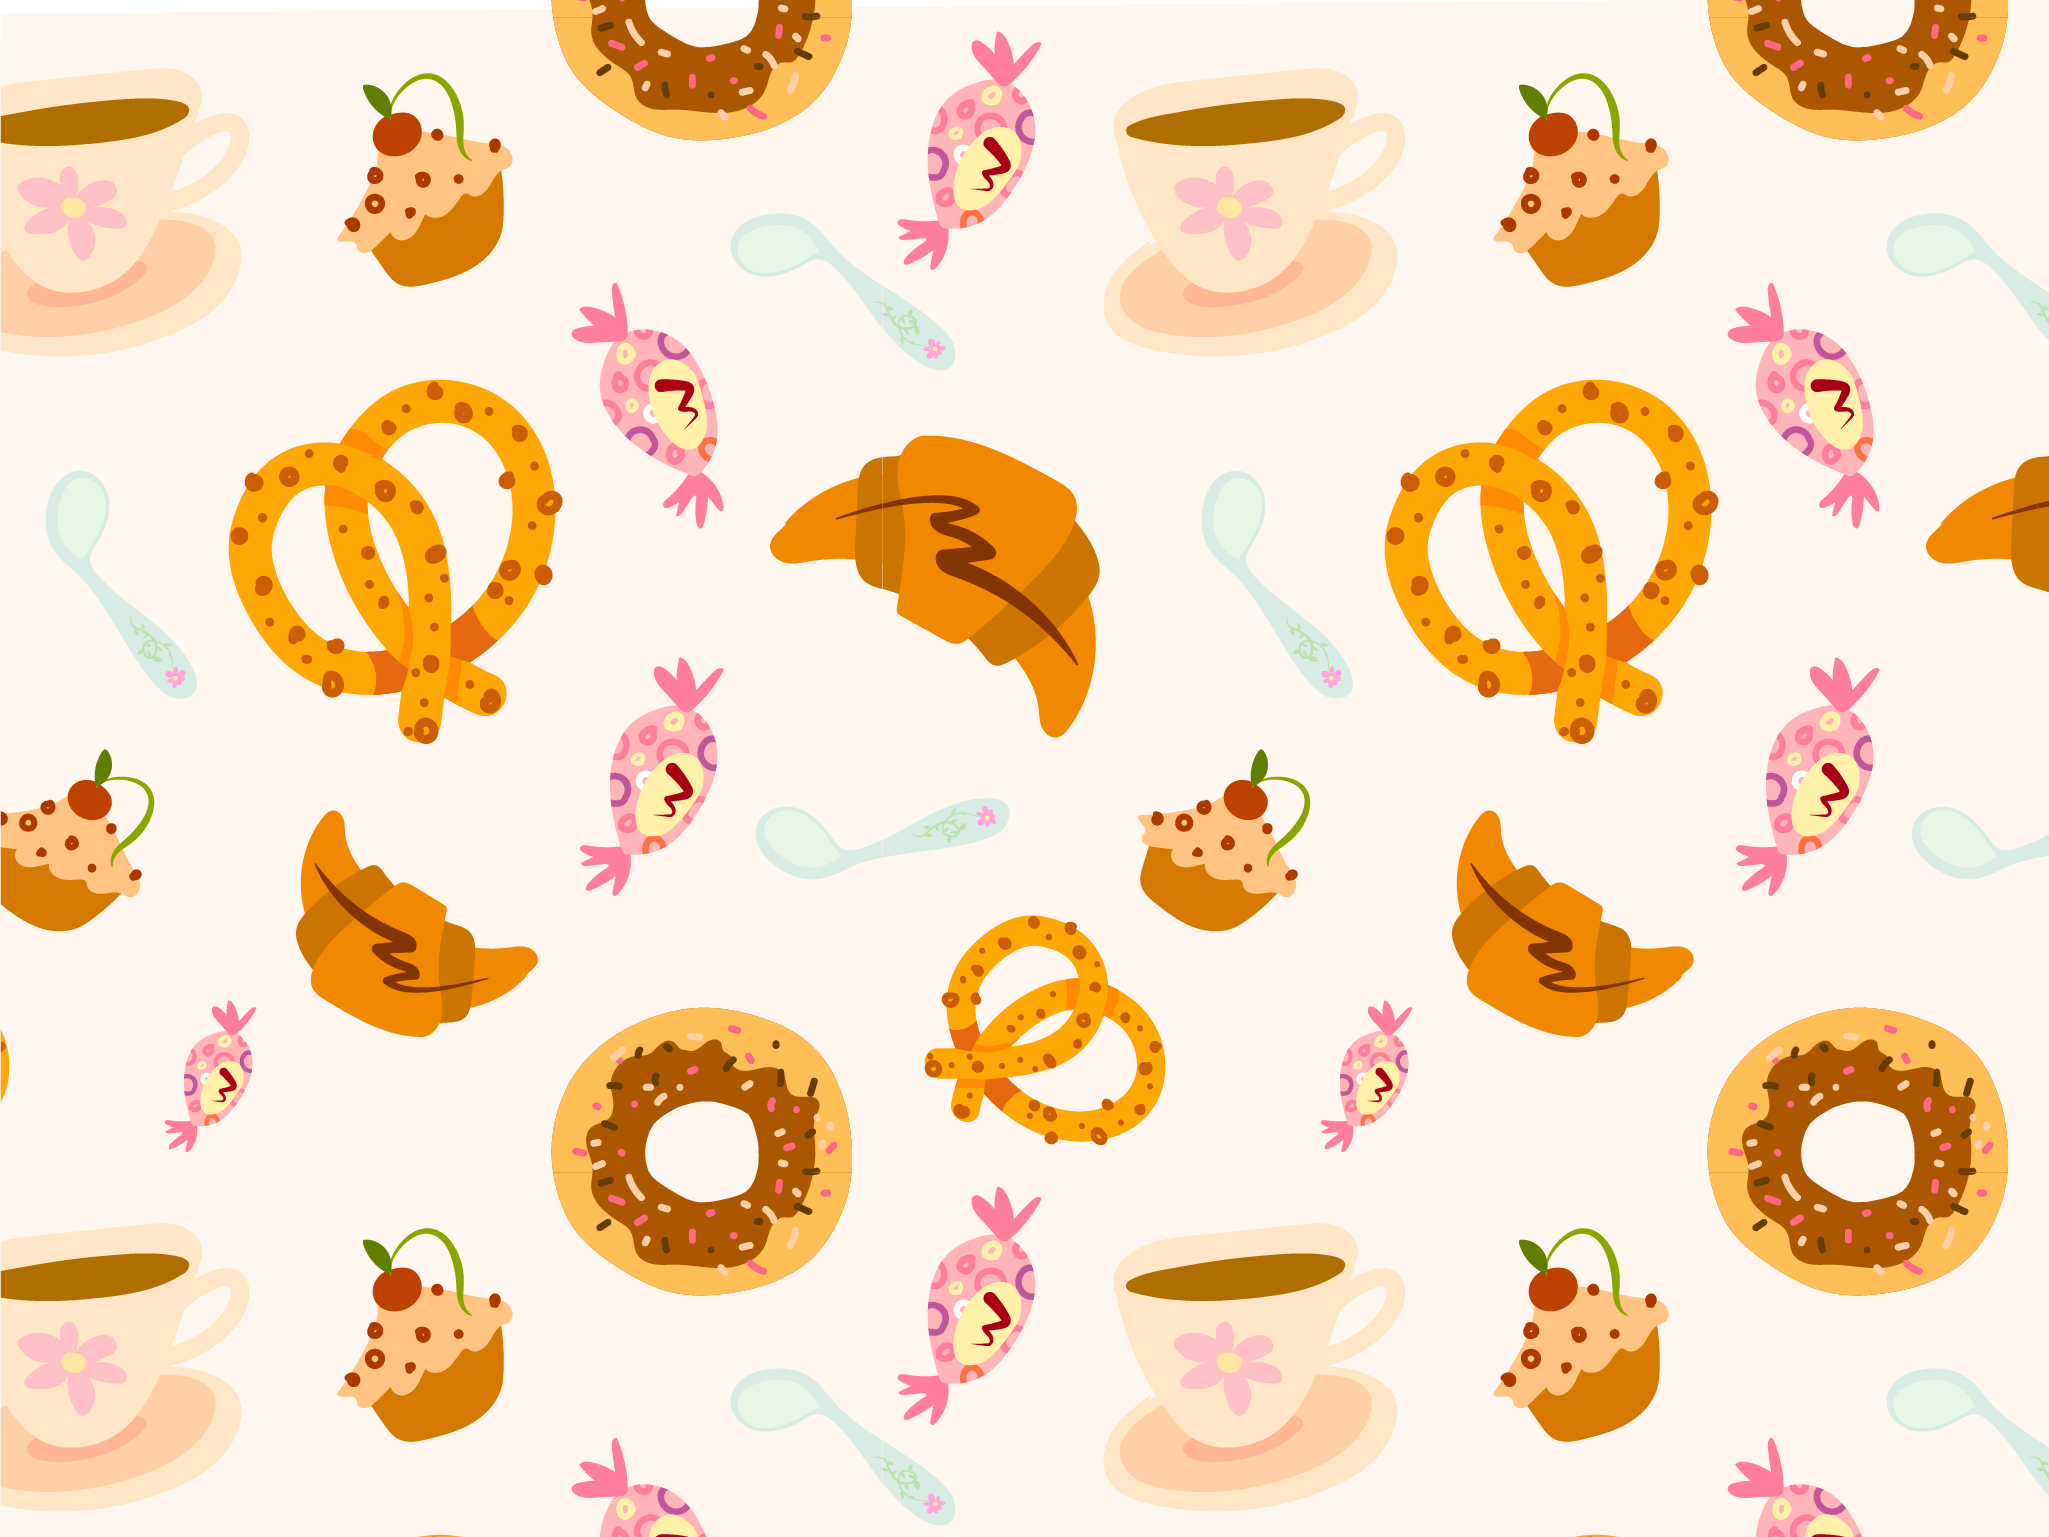 China Dishes Patterns Png - Pin by Aminaaghuman on amina (With images) | Pattern, Png, Tableware